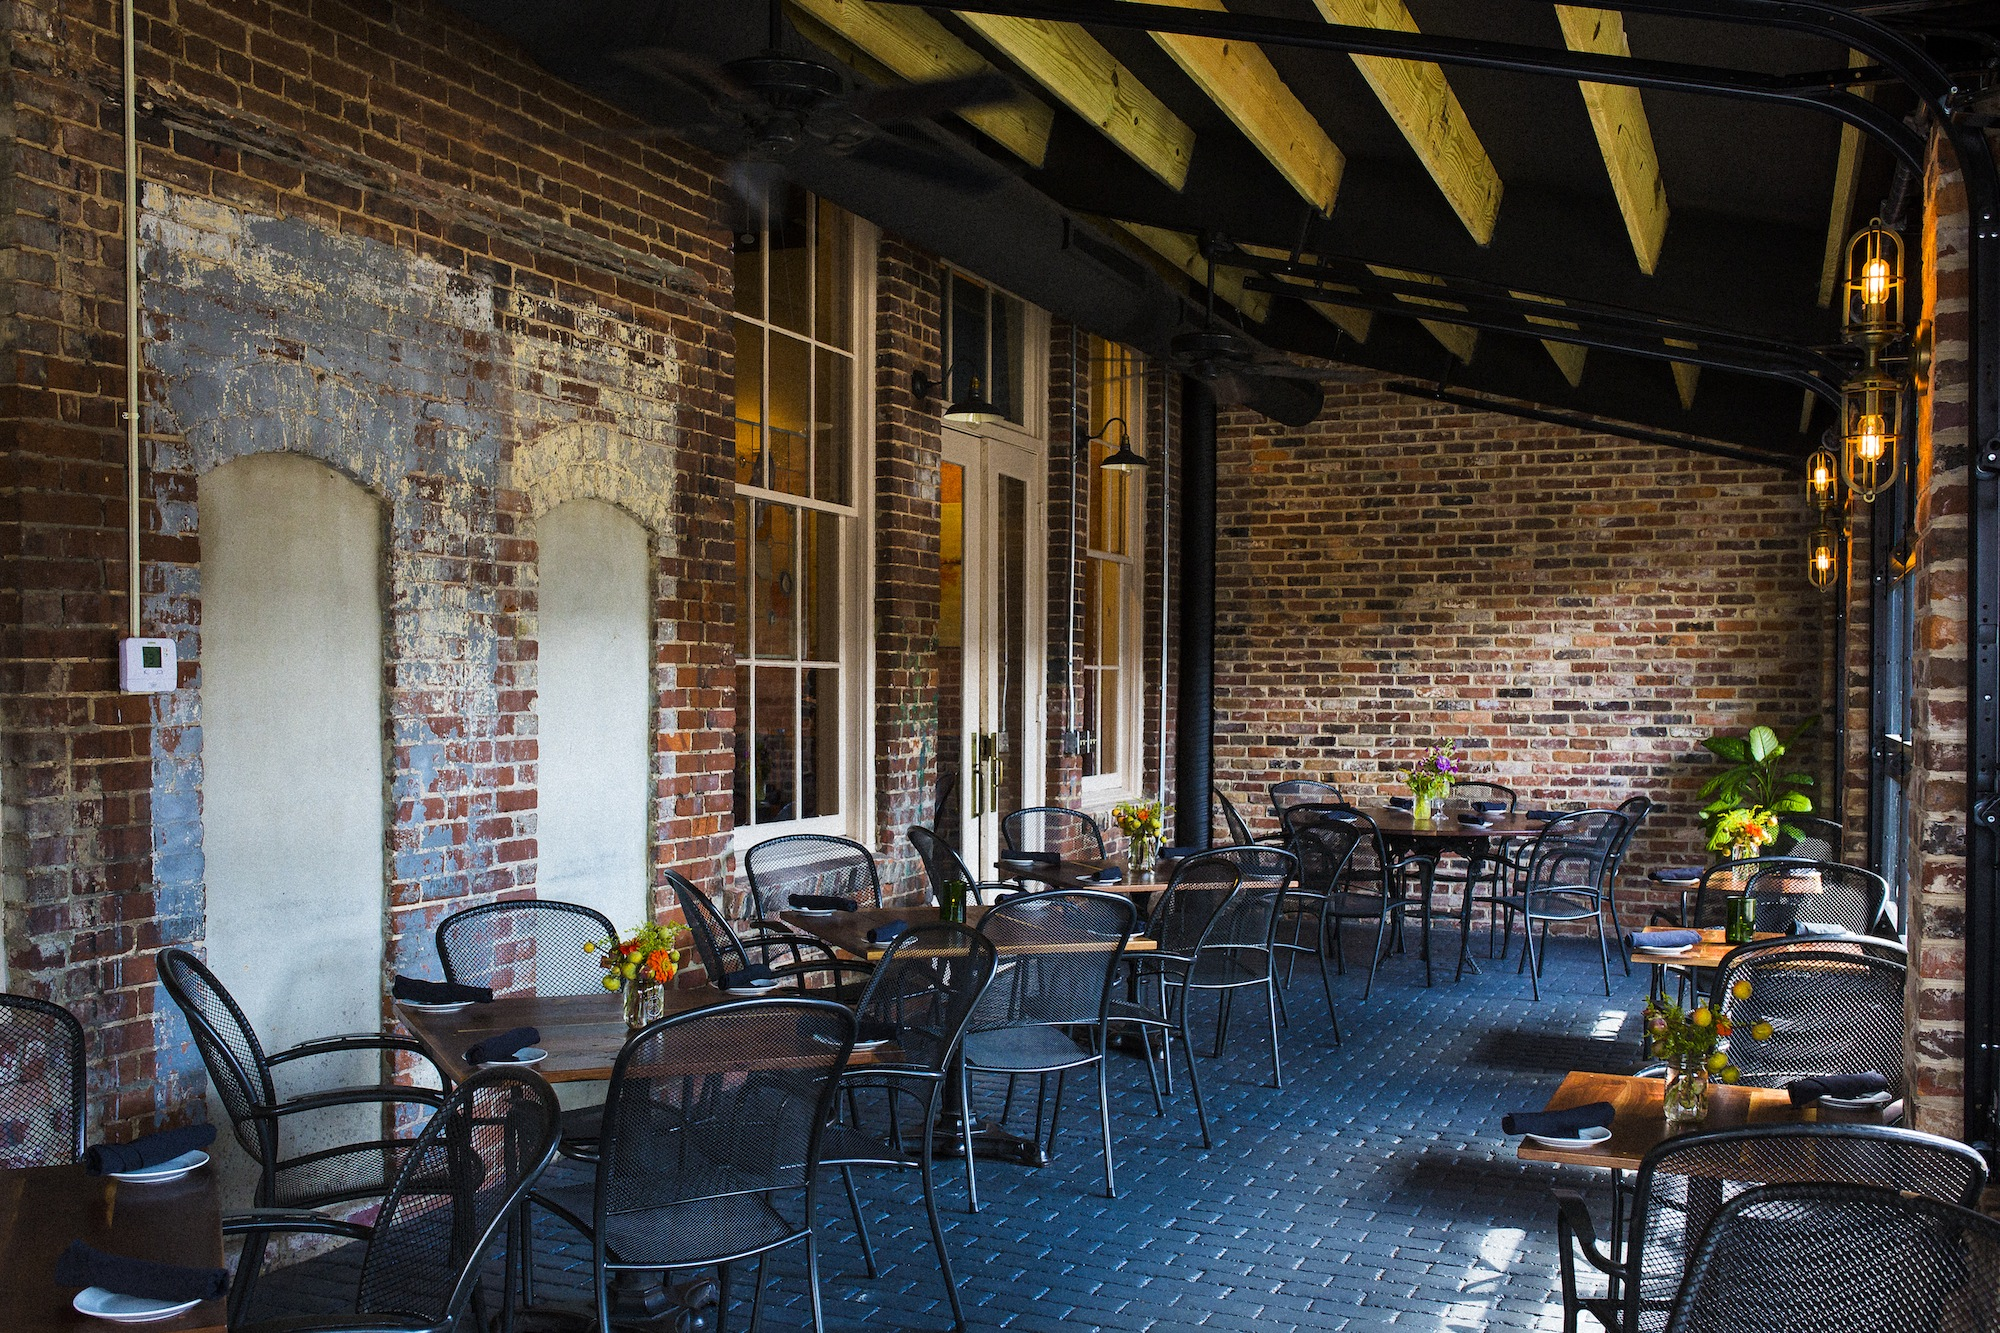 Enjoy Outdoor Eating Indoor Seating on the New Patio Motor